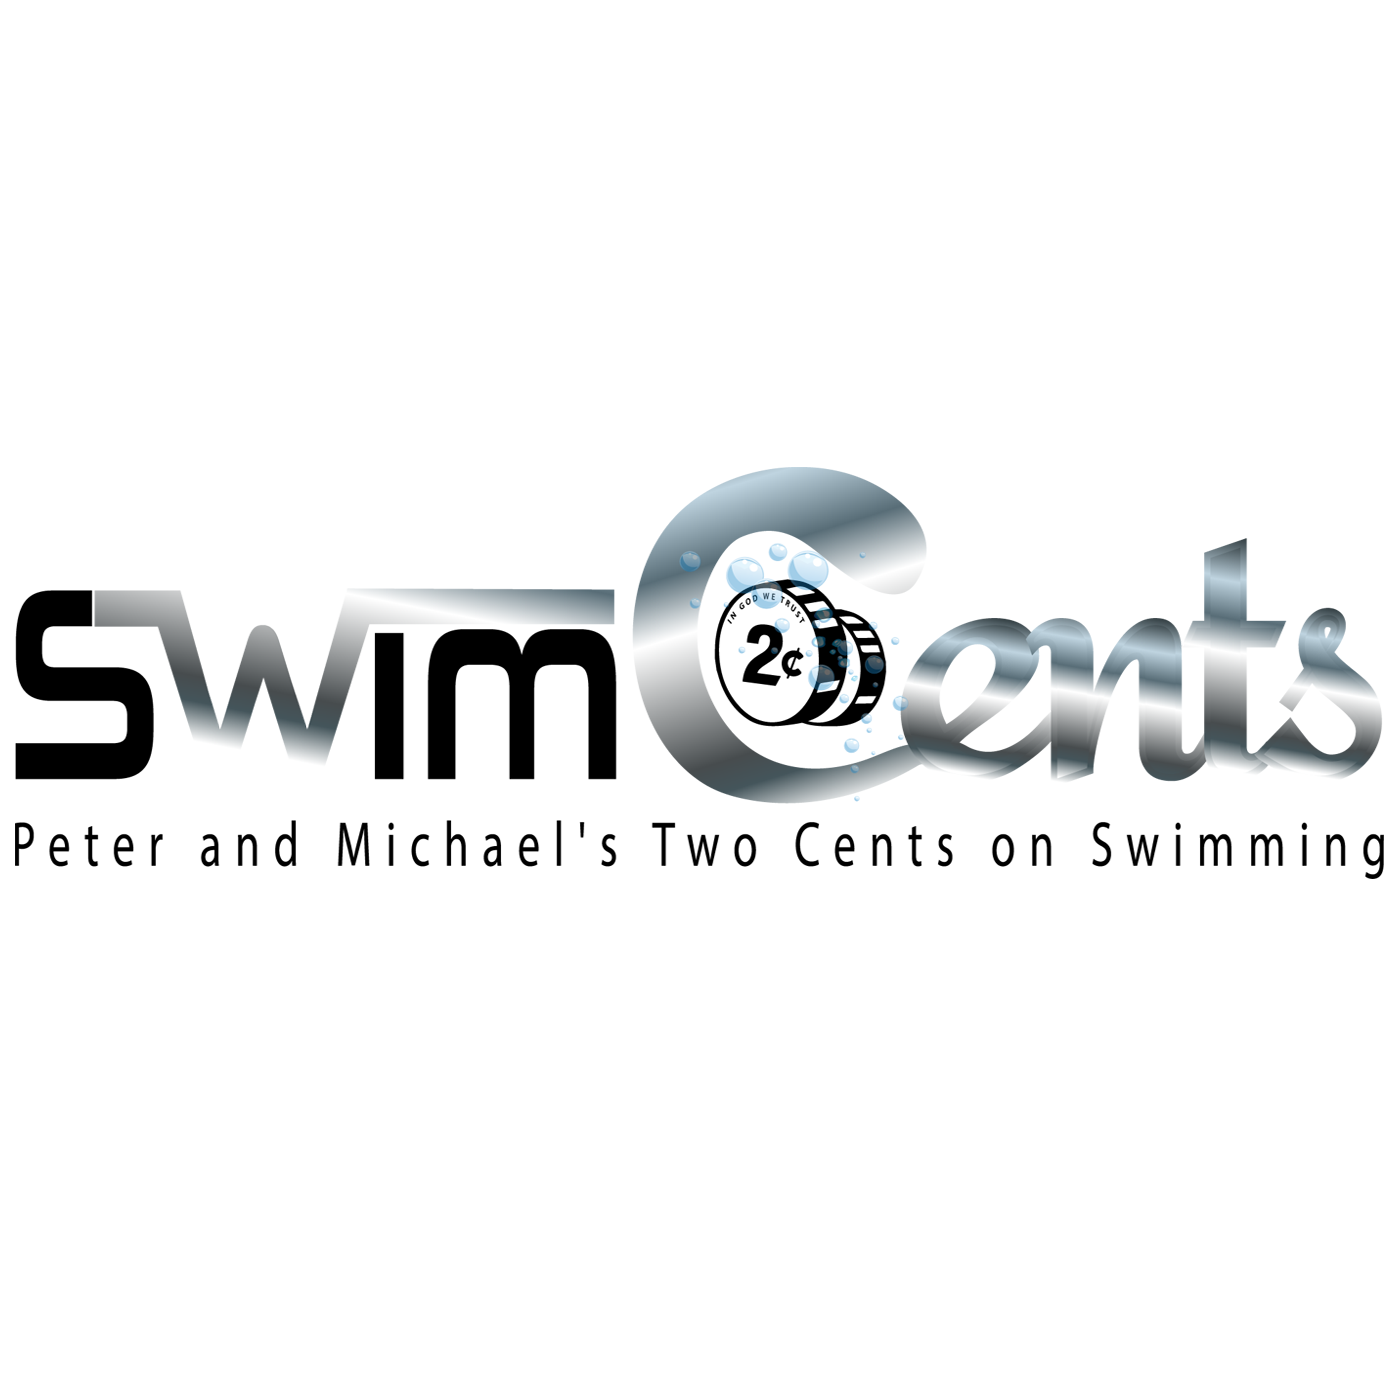 SwimCents Vodcast, Peter Andrew and Michael Andrew's Two Cents on Swimming logo